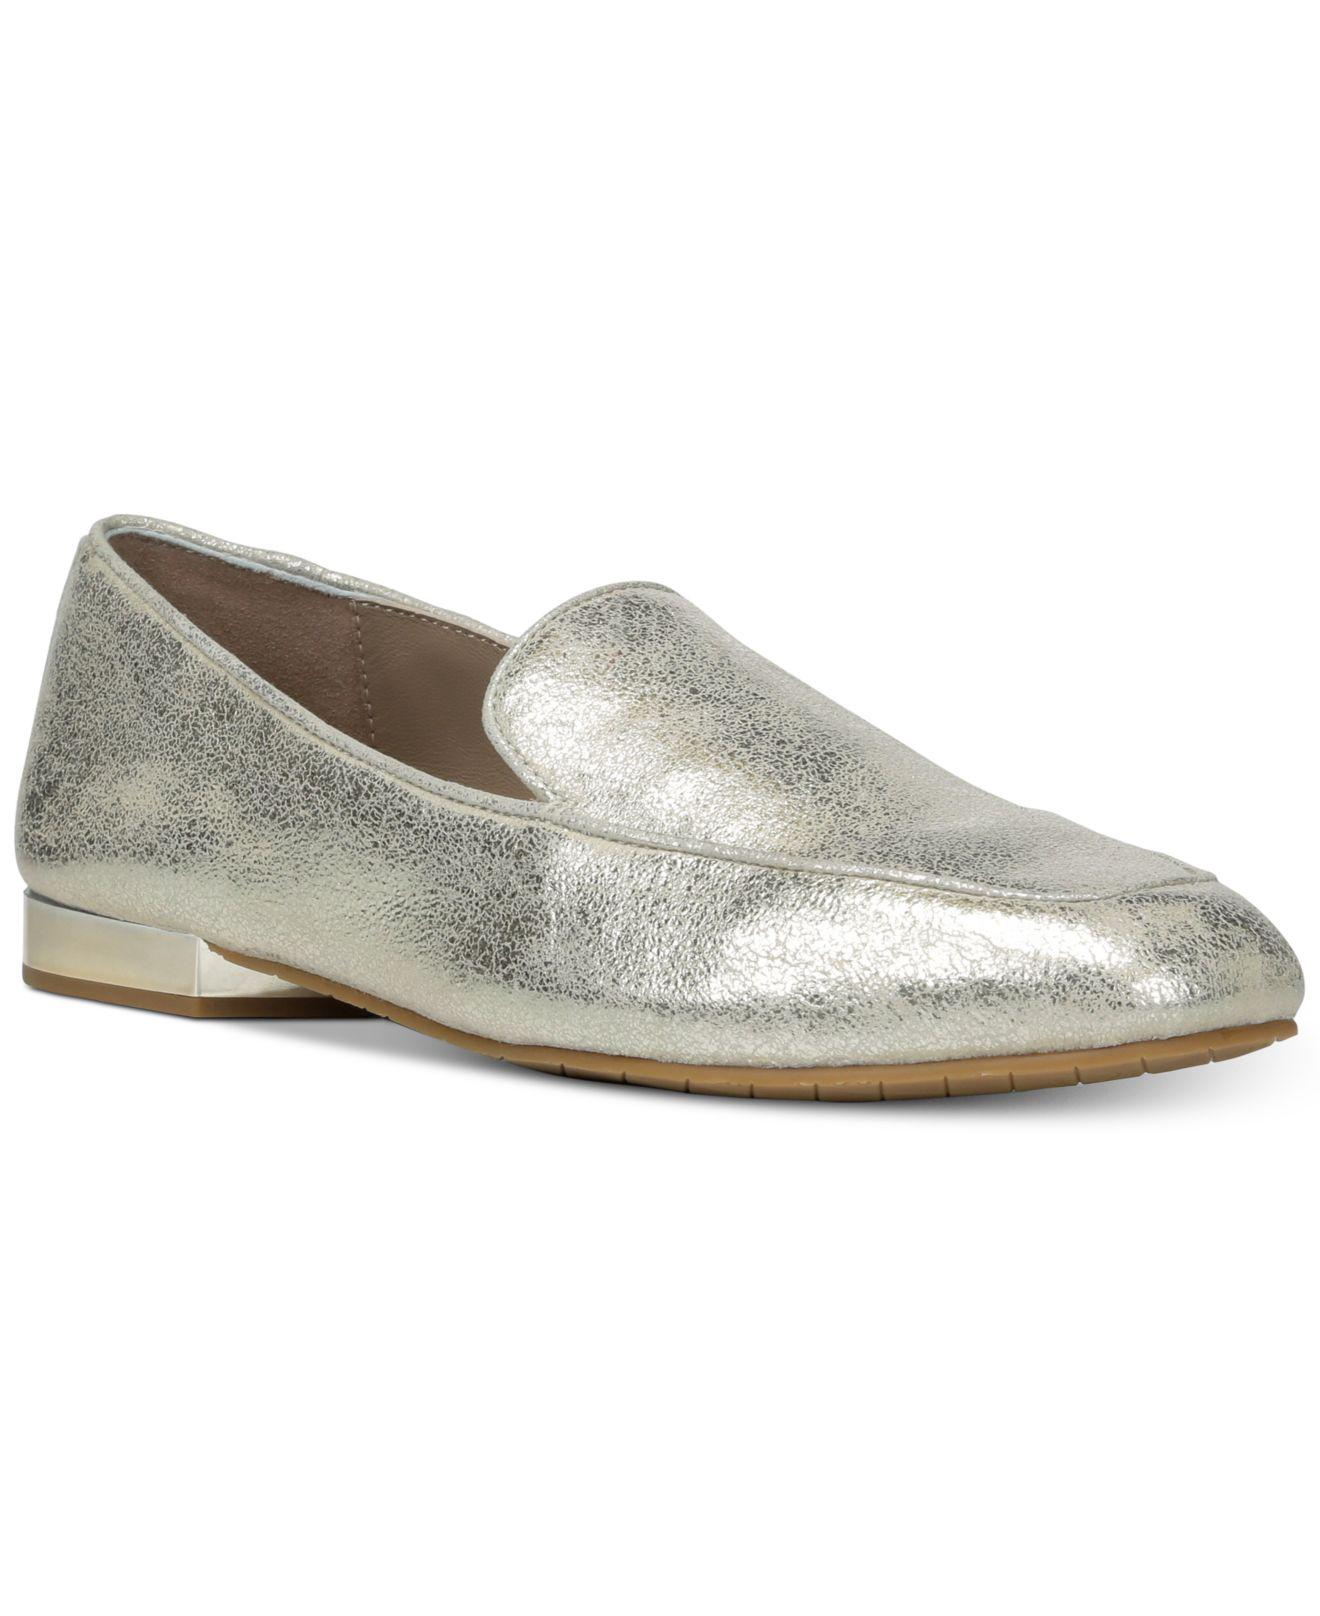 Donald Pliner Women's Honey Tumbled Leather & Patent Leather Loafers 4vtgCb